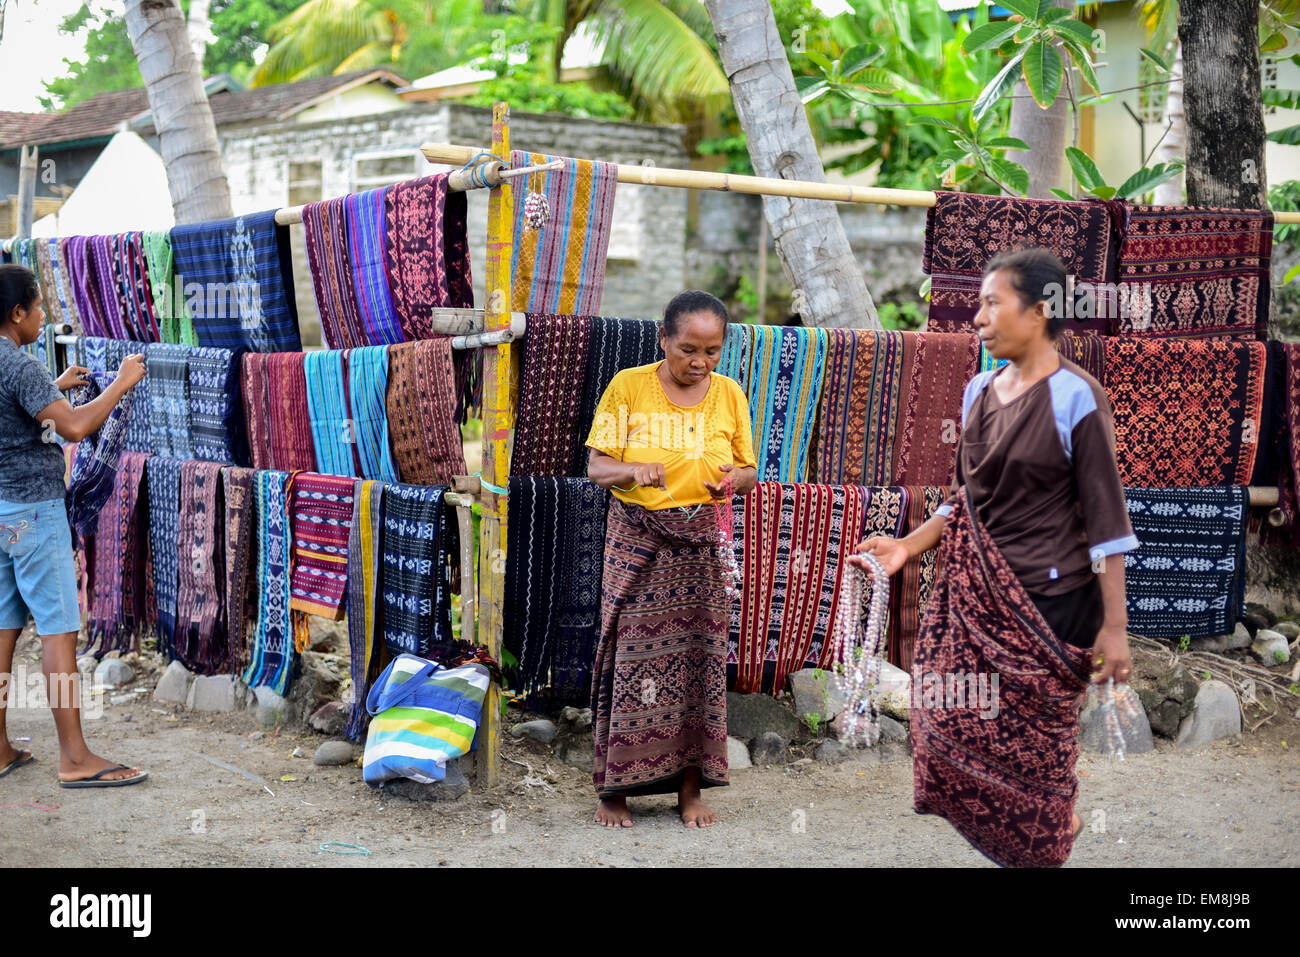 Women sell their hand-made weavings at Sikka village, eastern ... Alamy1300 × 957Search by image Women sell their hand-made weavings at Sikka village, eastern Flores, Indonesia